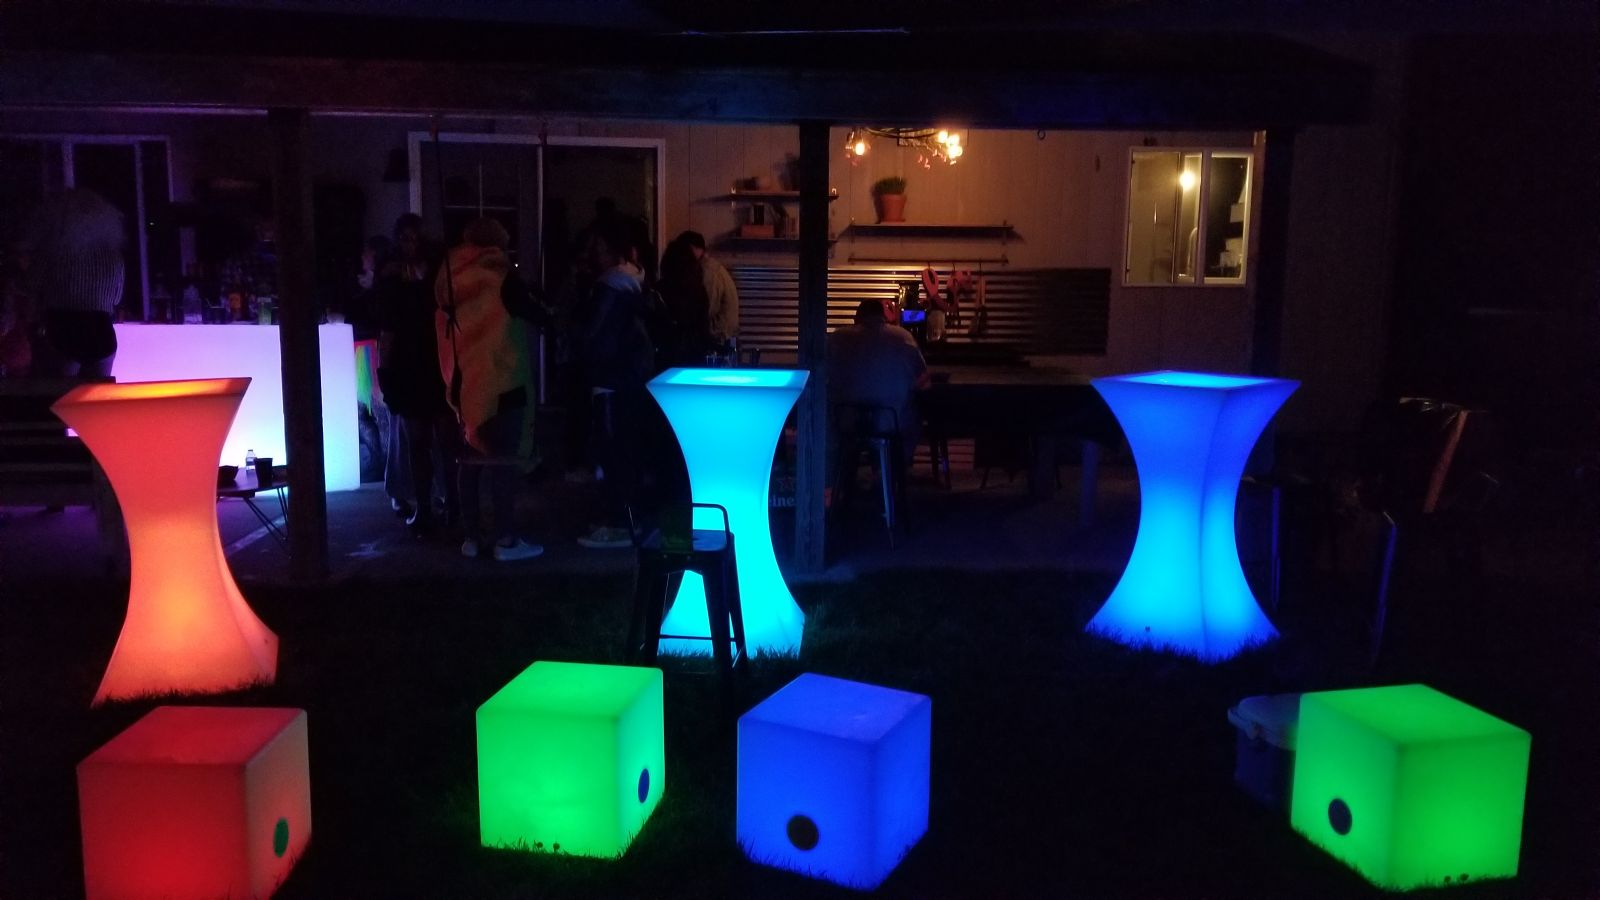 LED cubes and cocktail tables